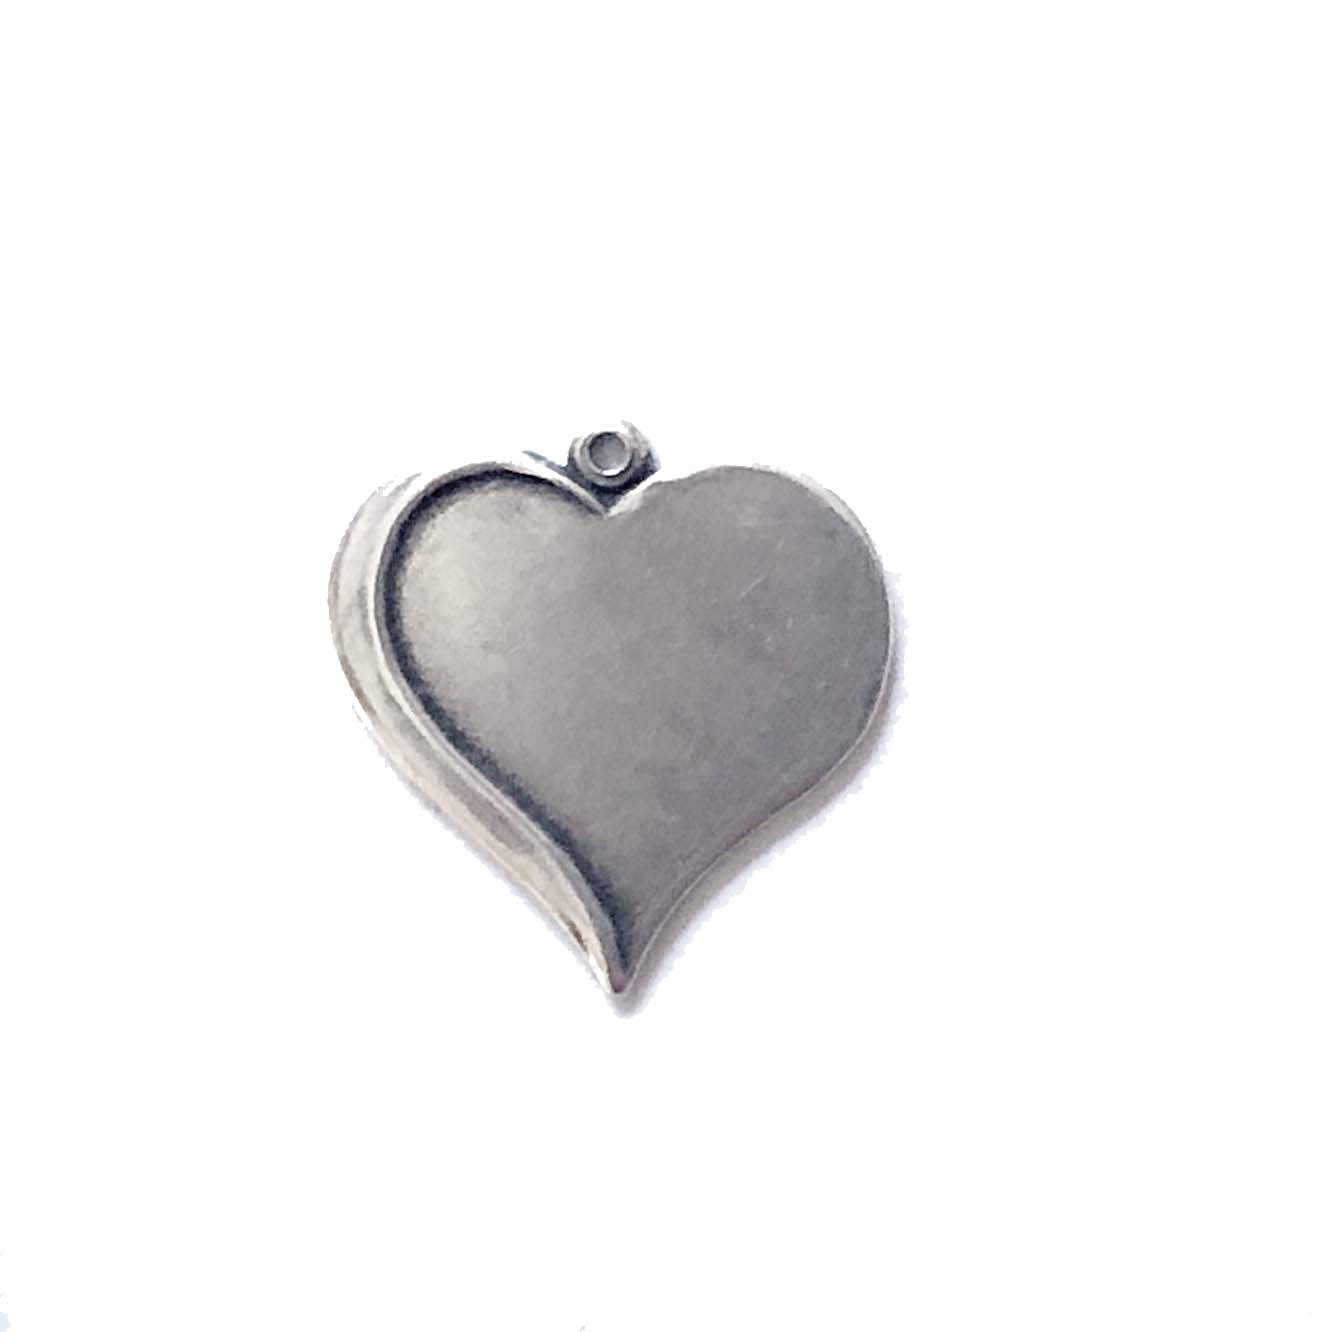 brass jewelry base, heart base, silverware silverplate, 0137, drilled base, B'sue Boutiques, nickel free jewelry, US made jewelry, vintage jewellery supplies, jewelry making supplies, antique silver, brass charms, heart jewelry blanks